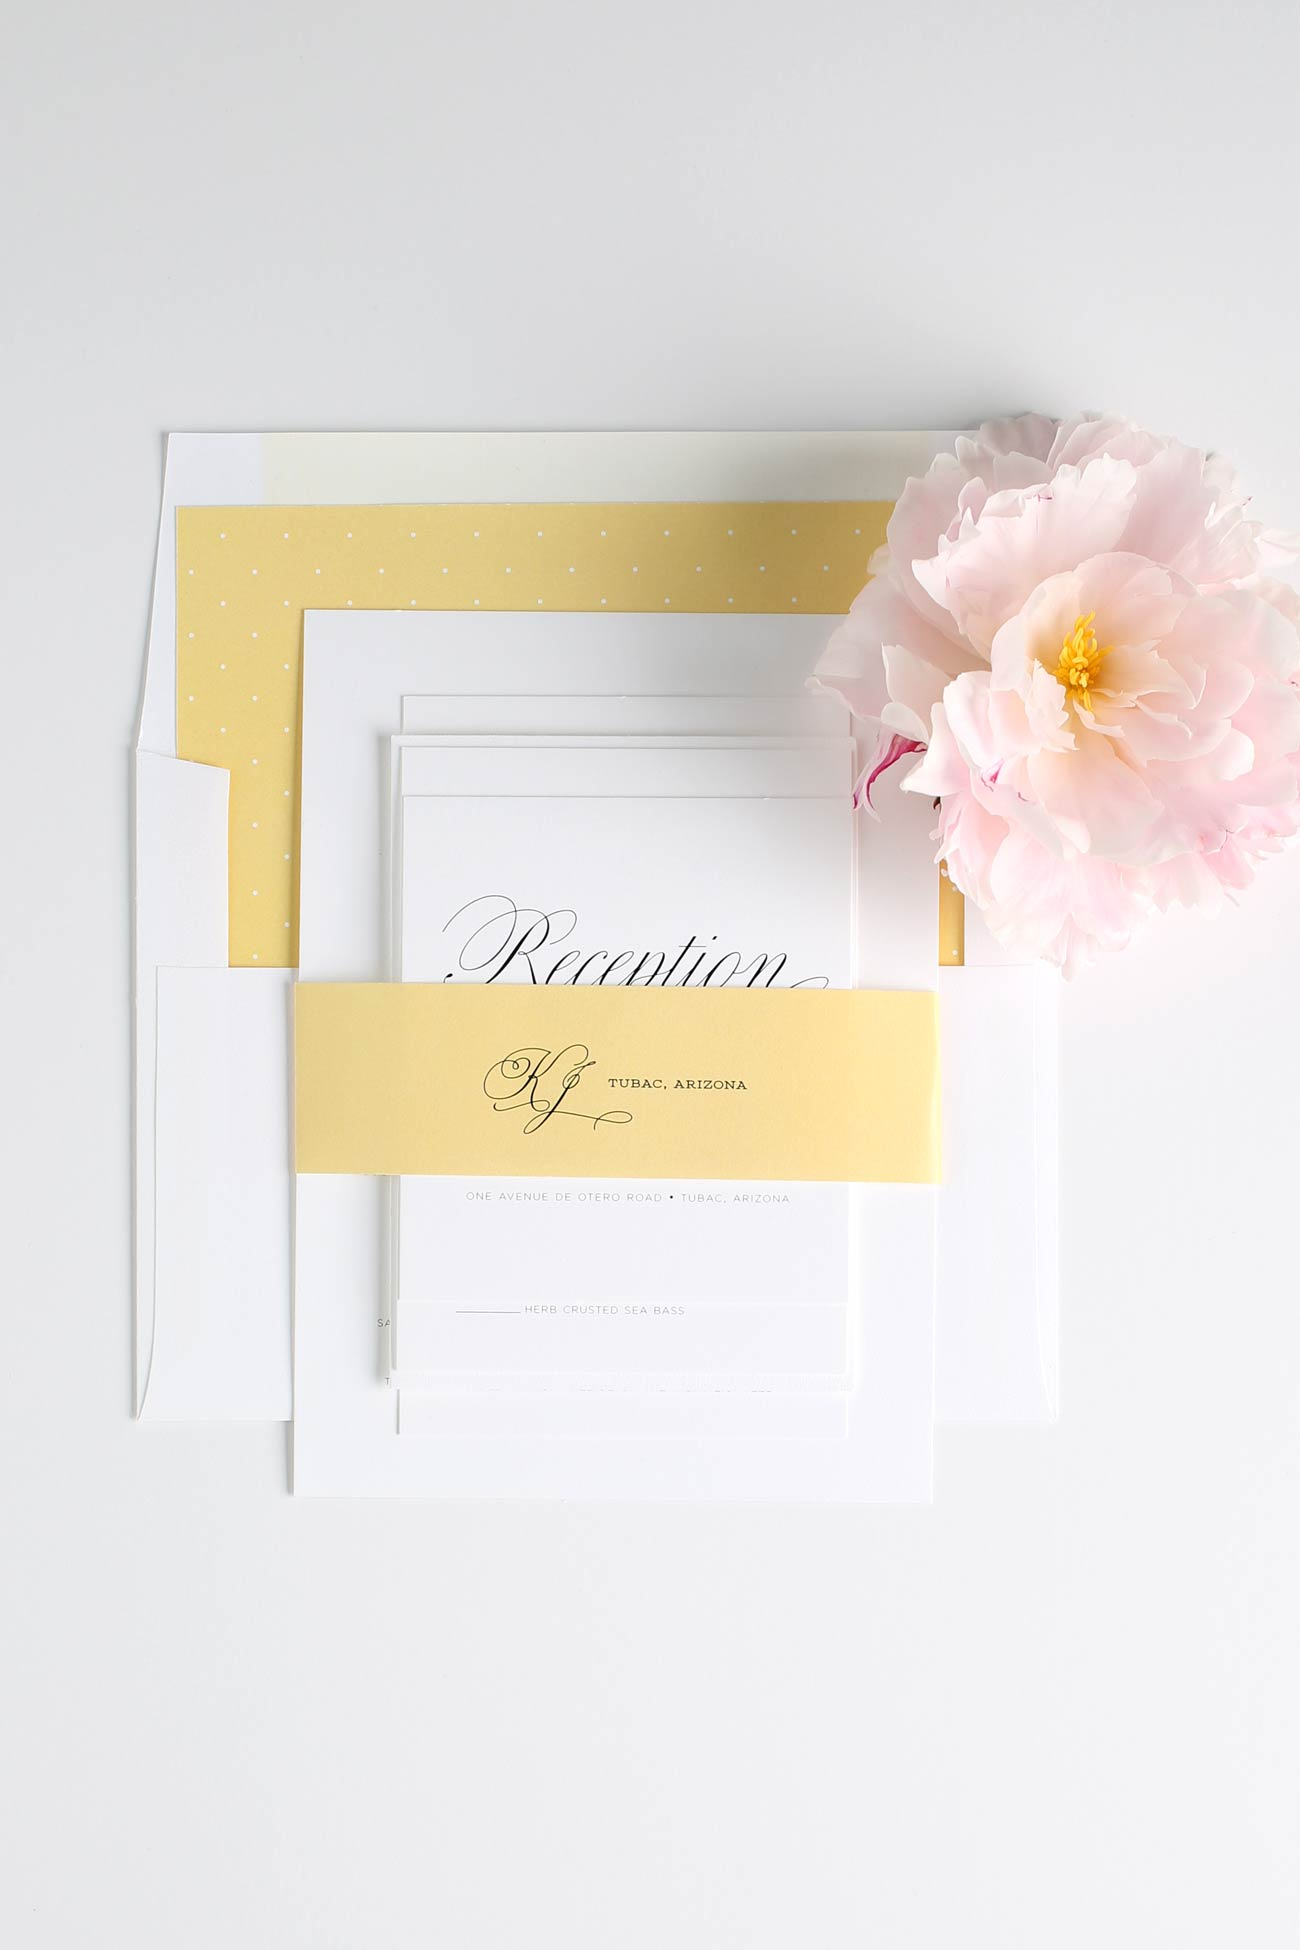 Secret garden wedding invitations with polka dot and yellow accents